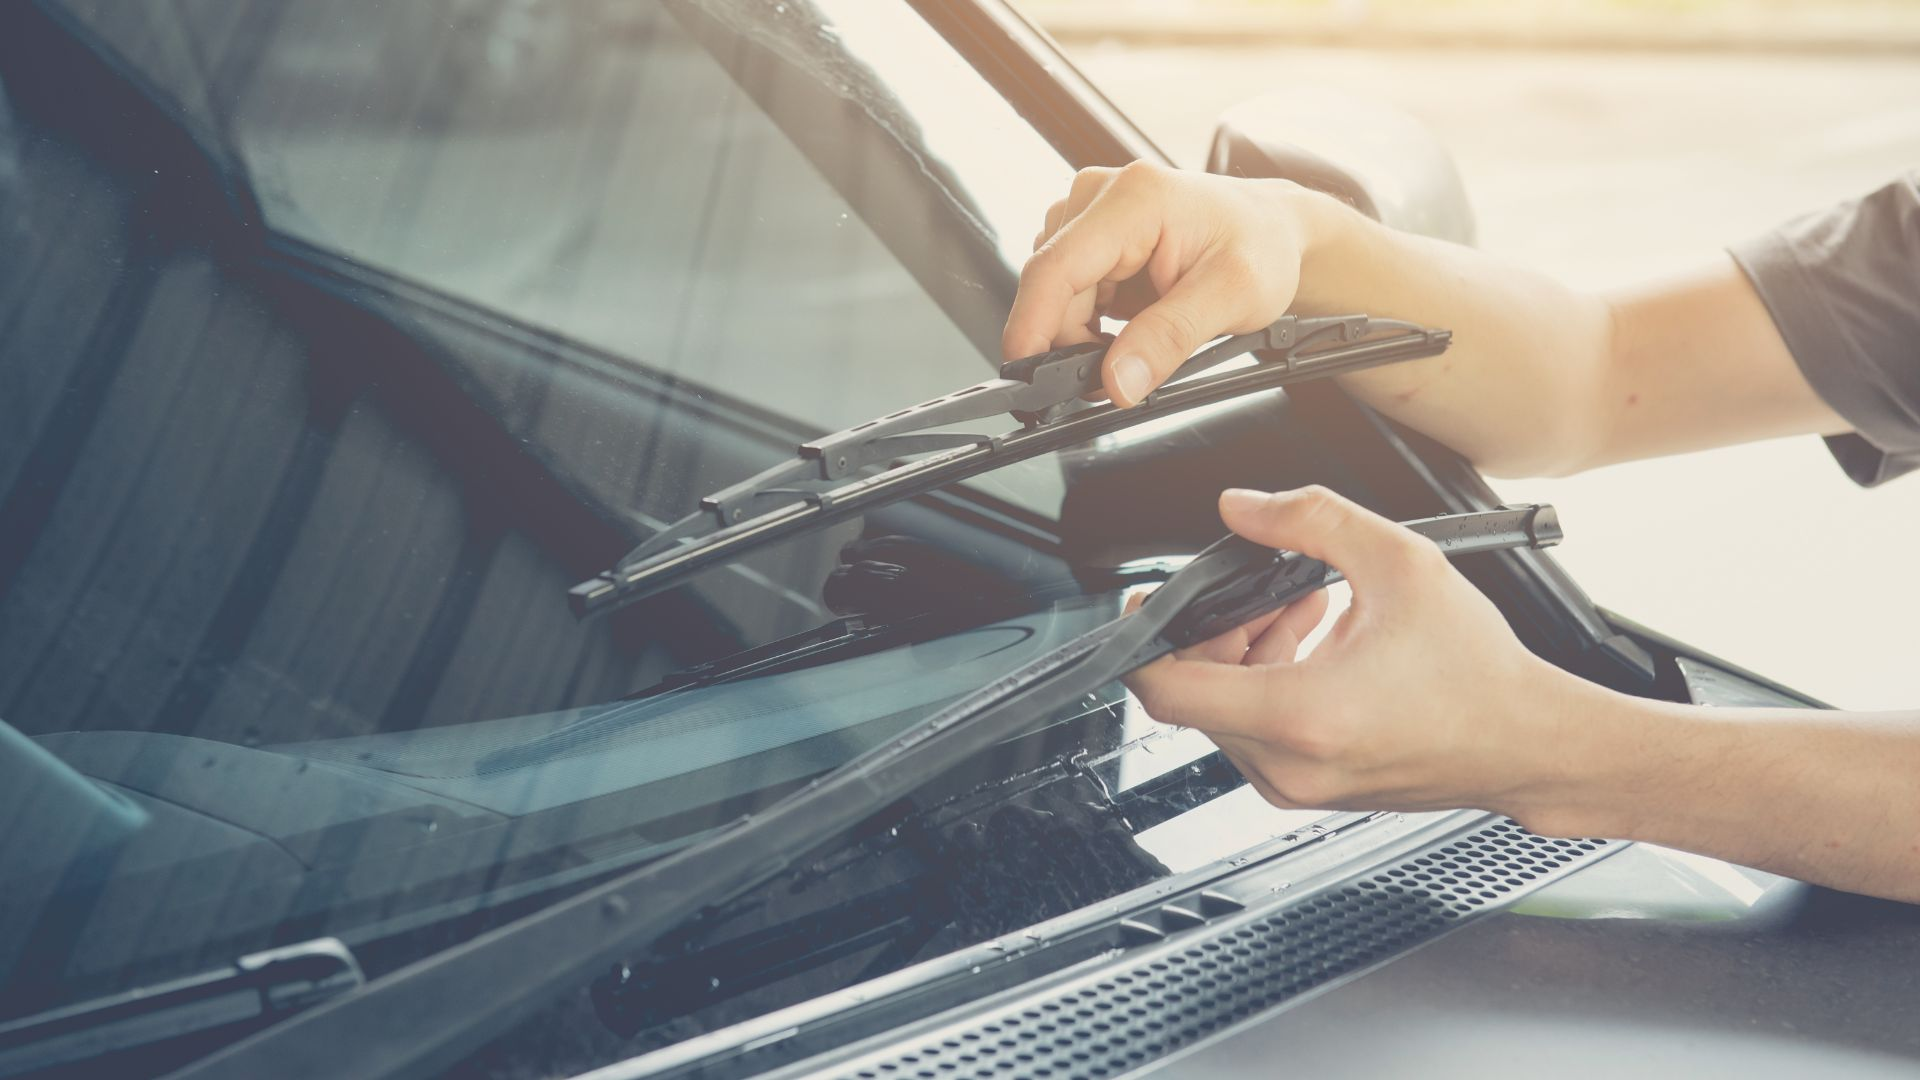 Faulty wiper blades